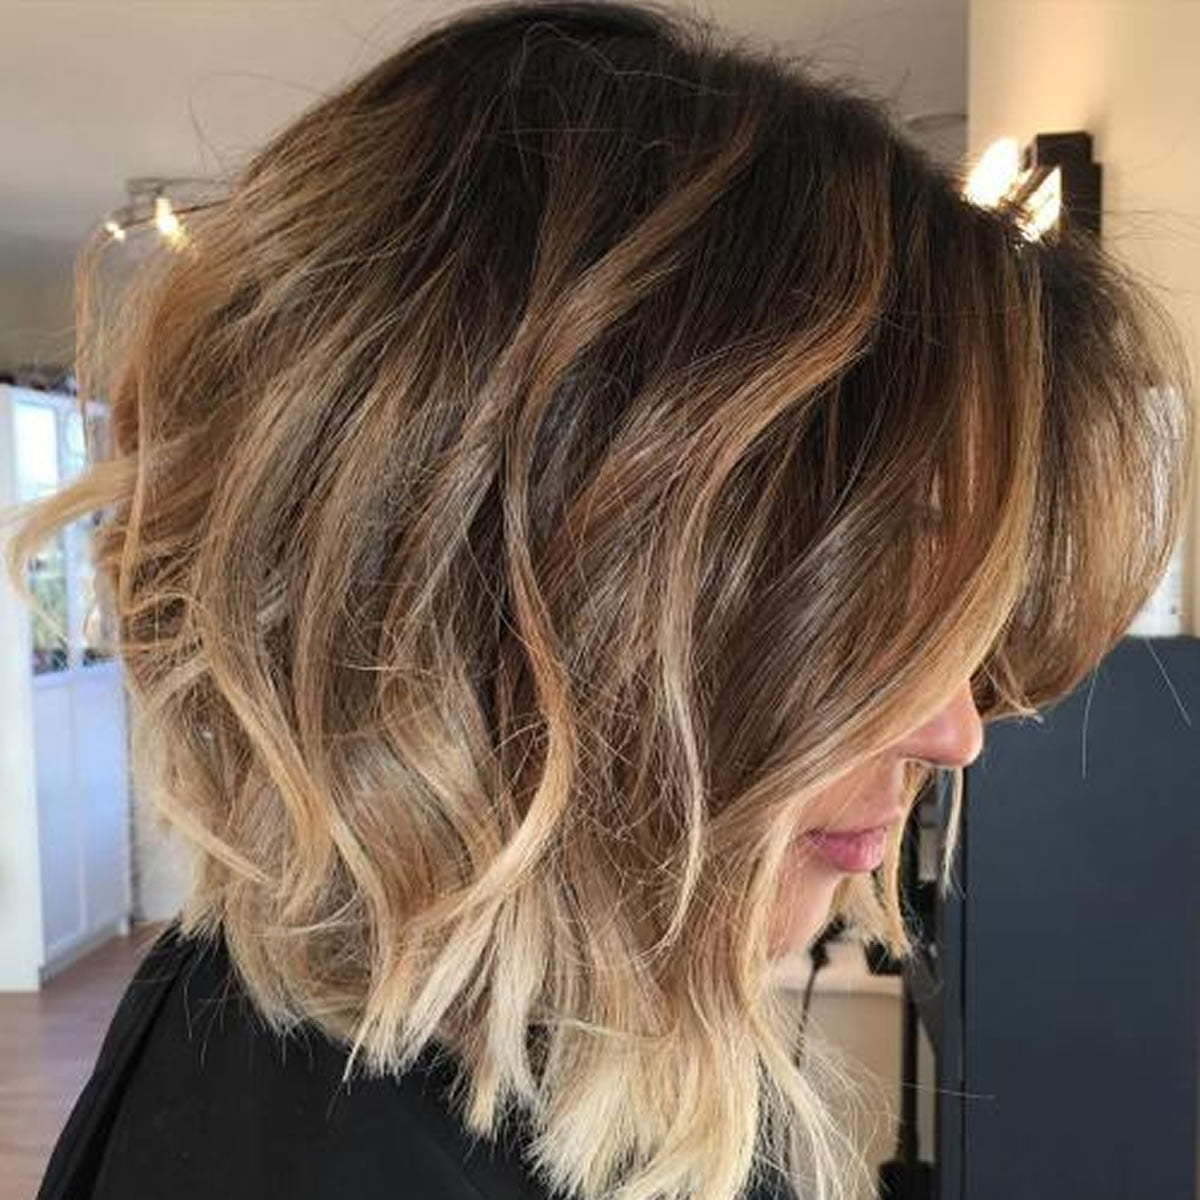 Long Bob Haircuts Ideas Bring Beauty Your